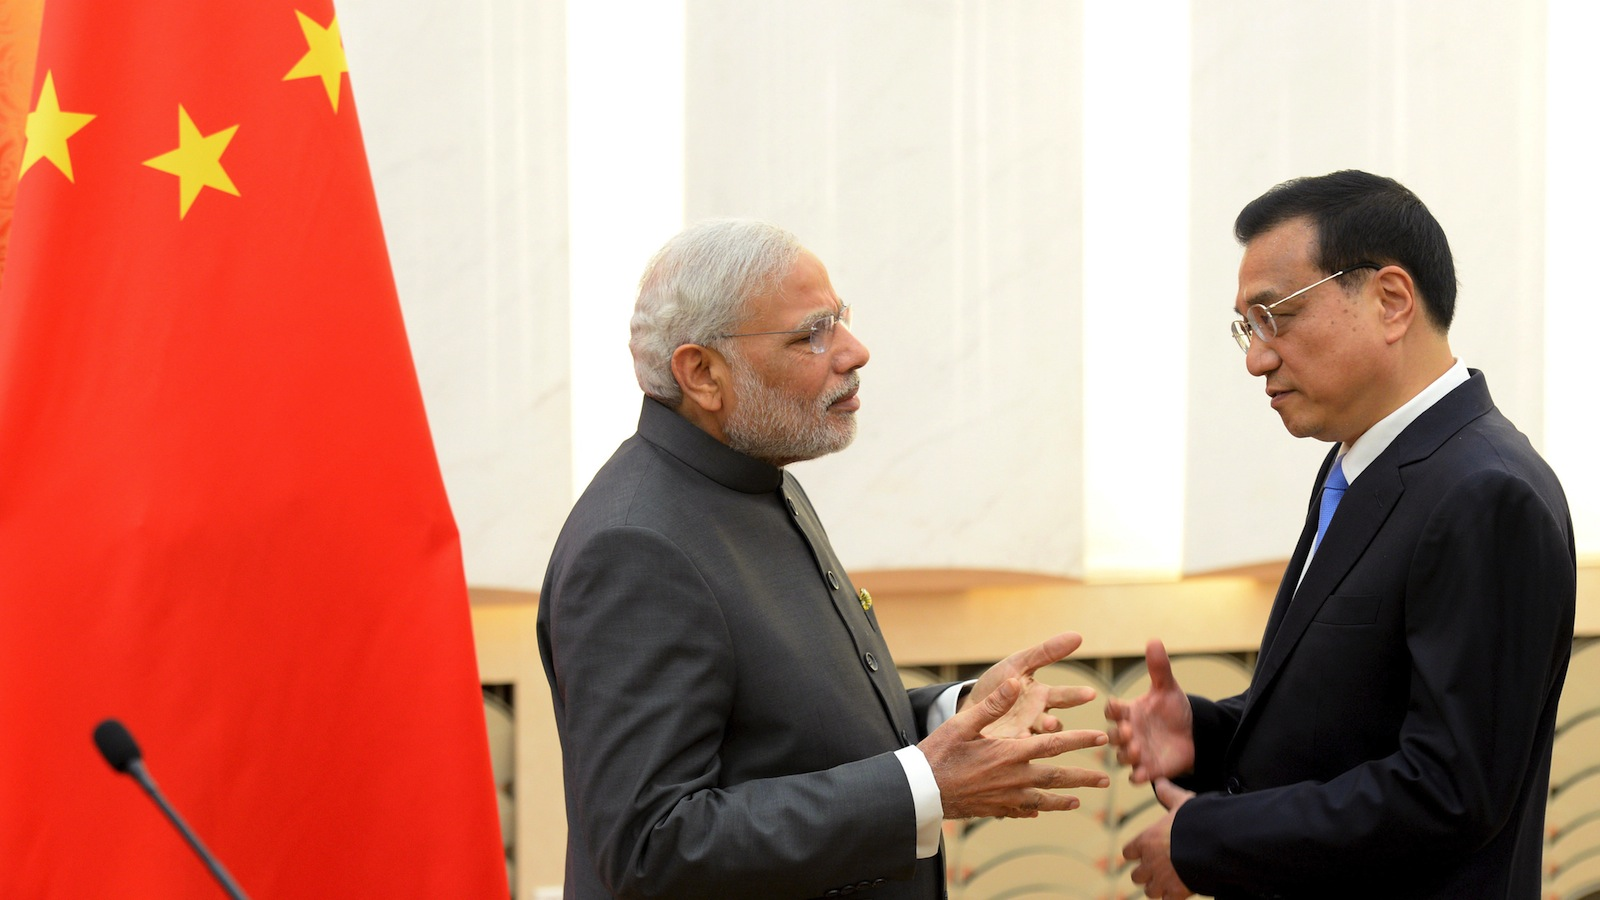 Indian Prime Minister Narendra Modi (L) talks with Chinese Premier Li Keqiang after a news conference at the Great Hall of the People in Beijing, China, on May 15, 2015.